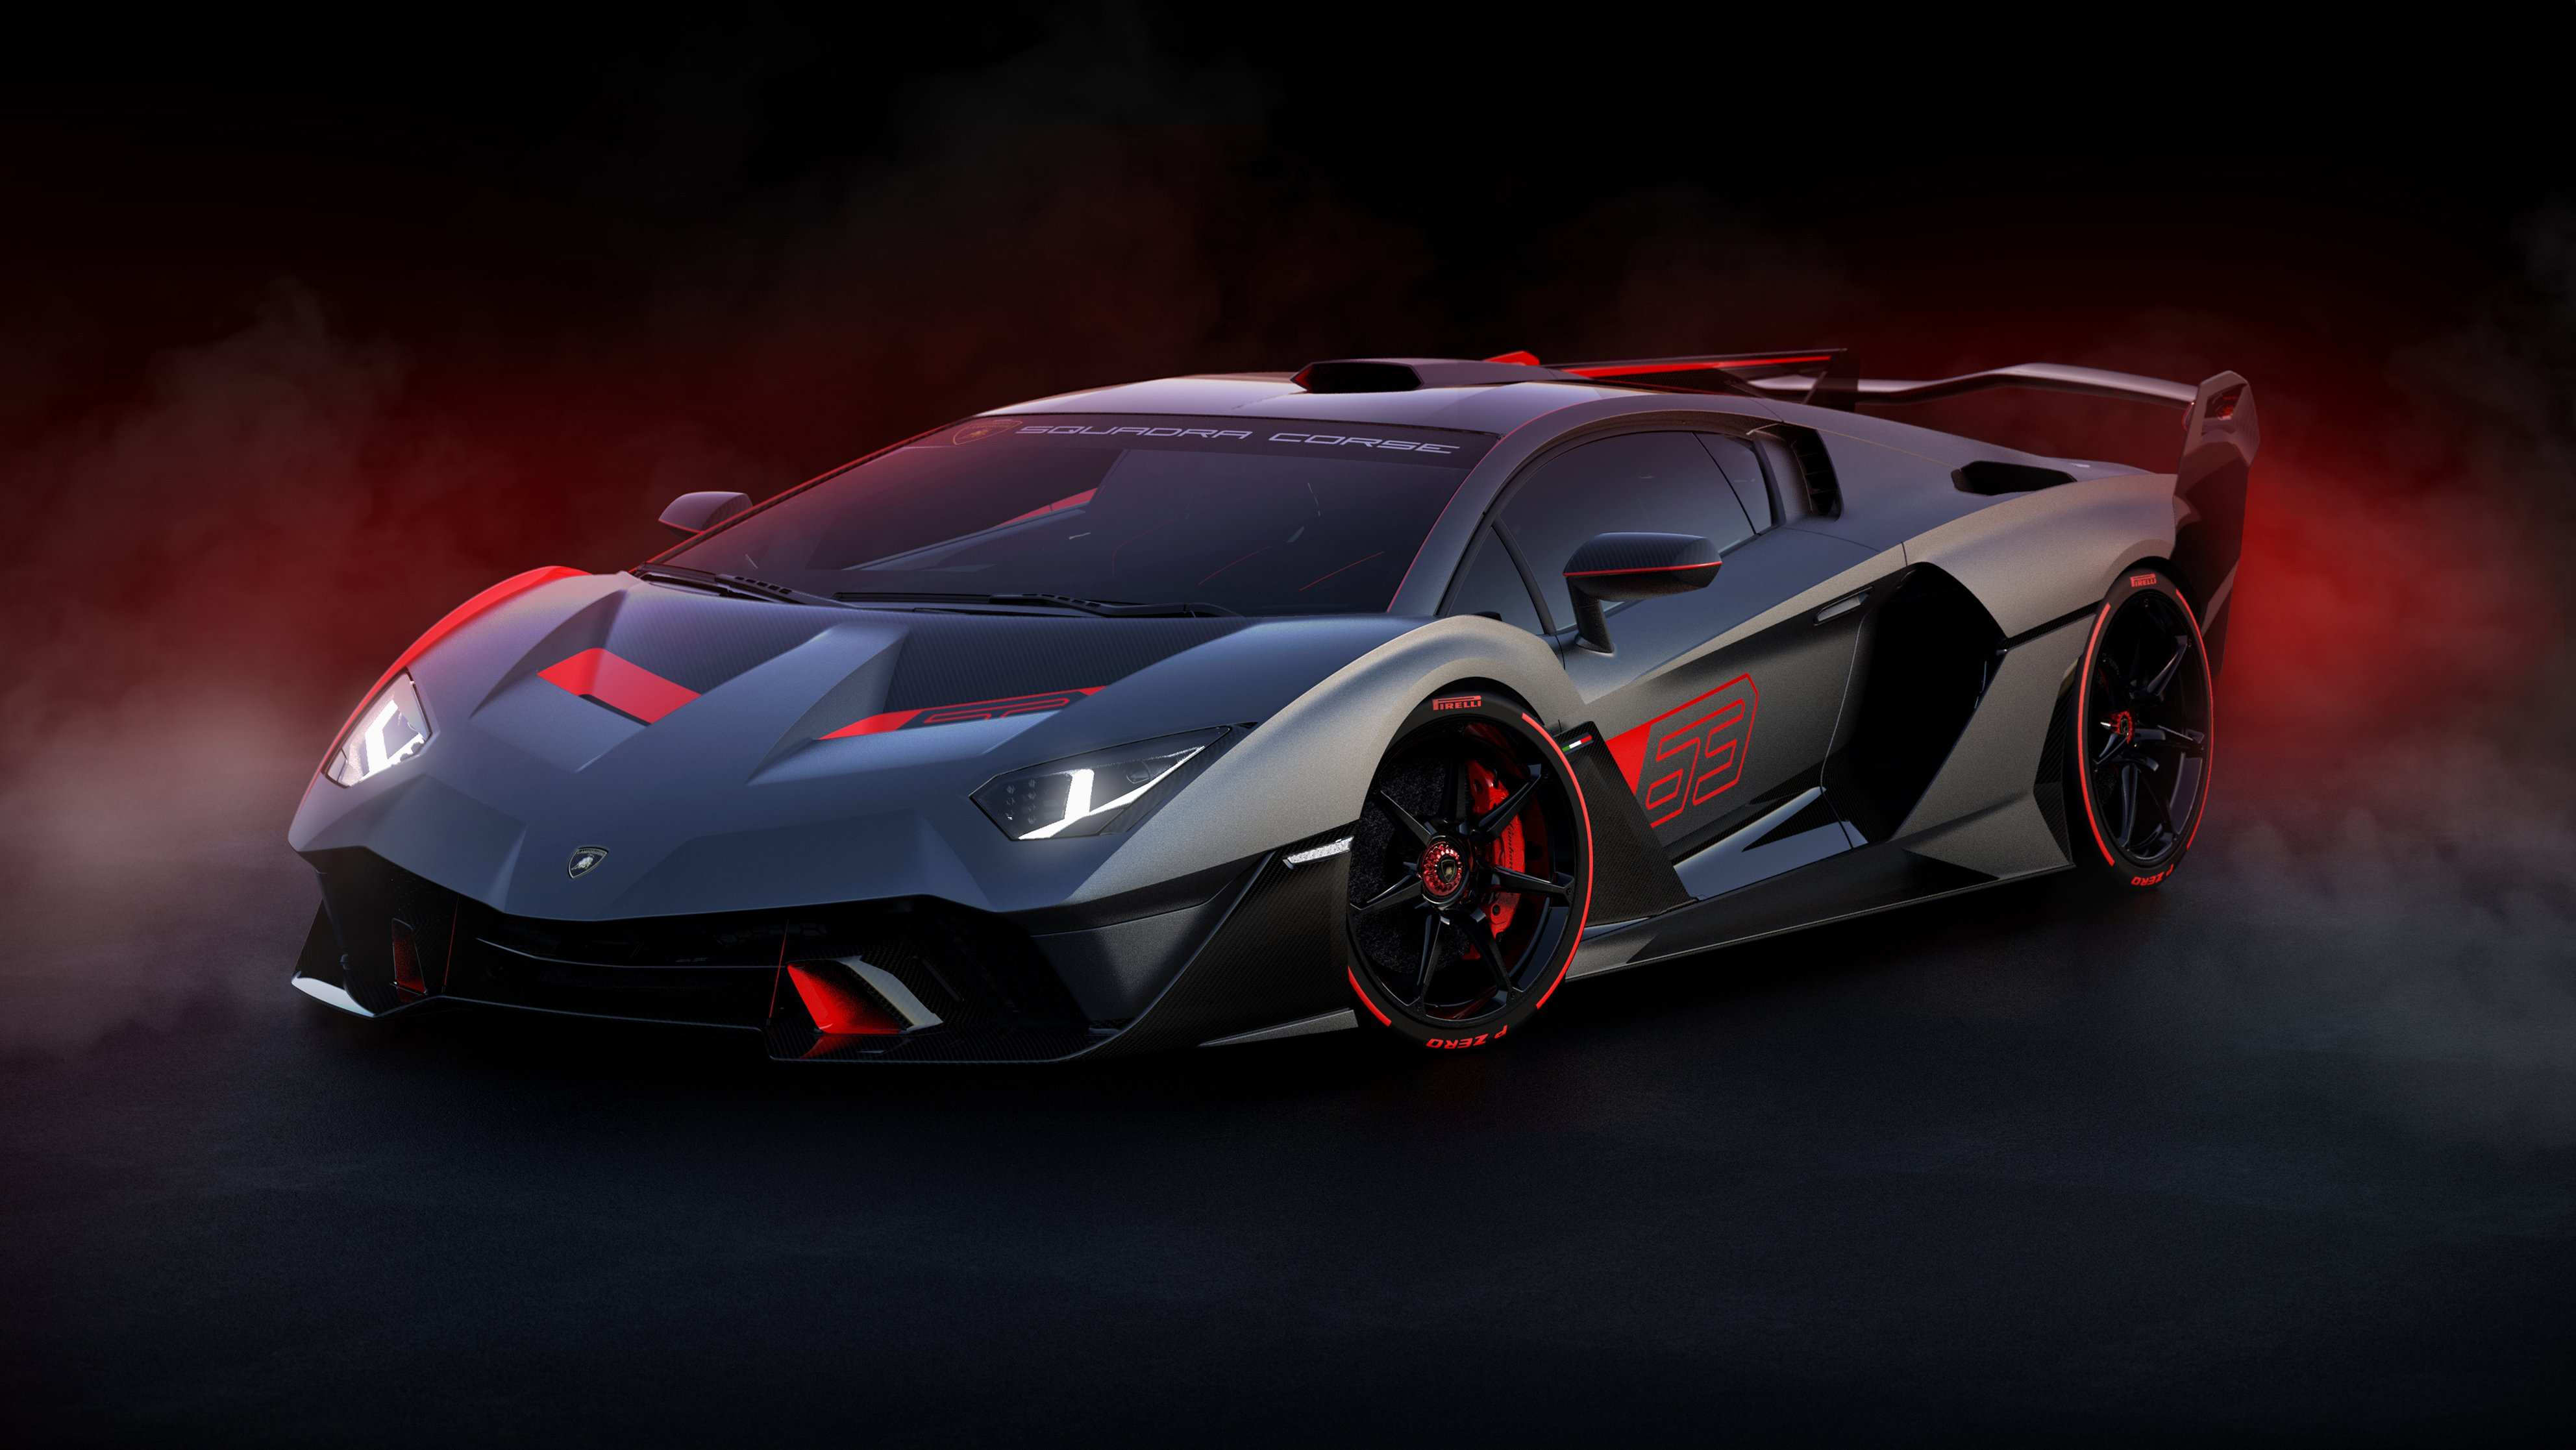 77 The 2019 Lamborghini Aventador Price Design And Review